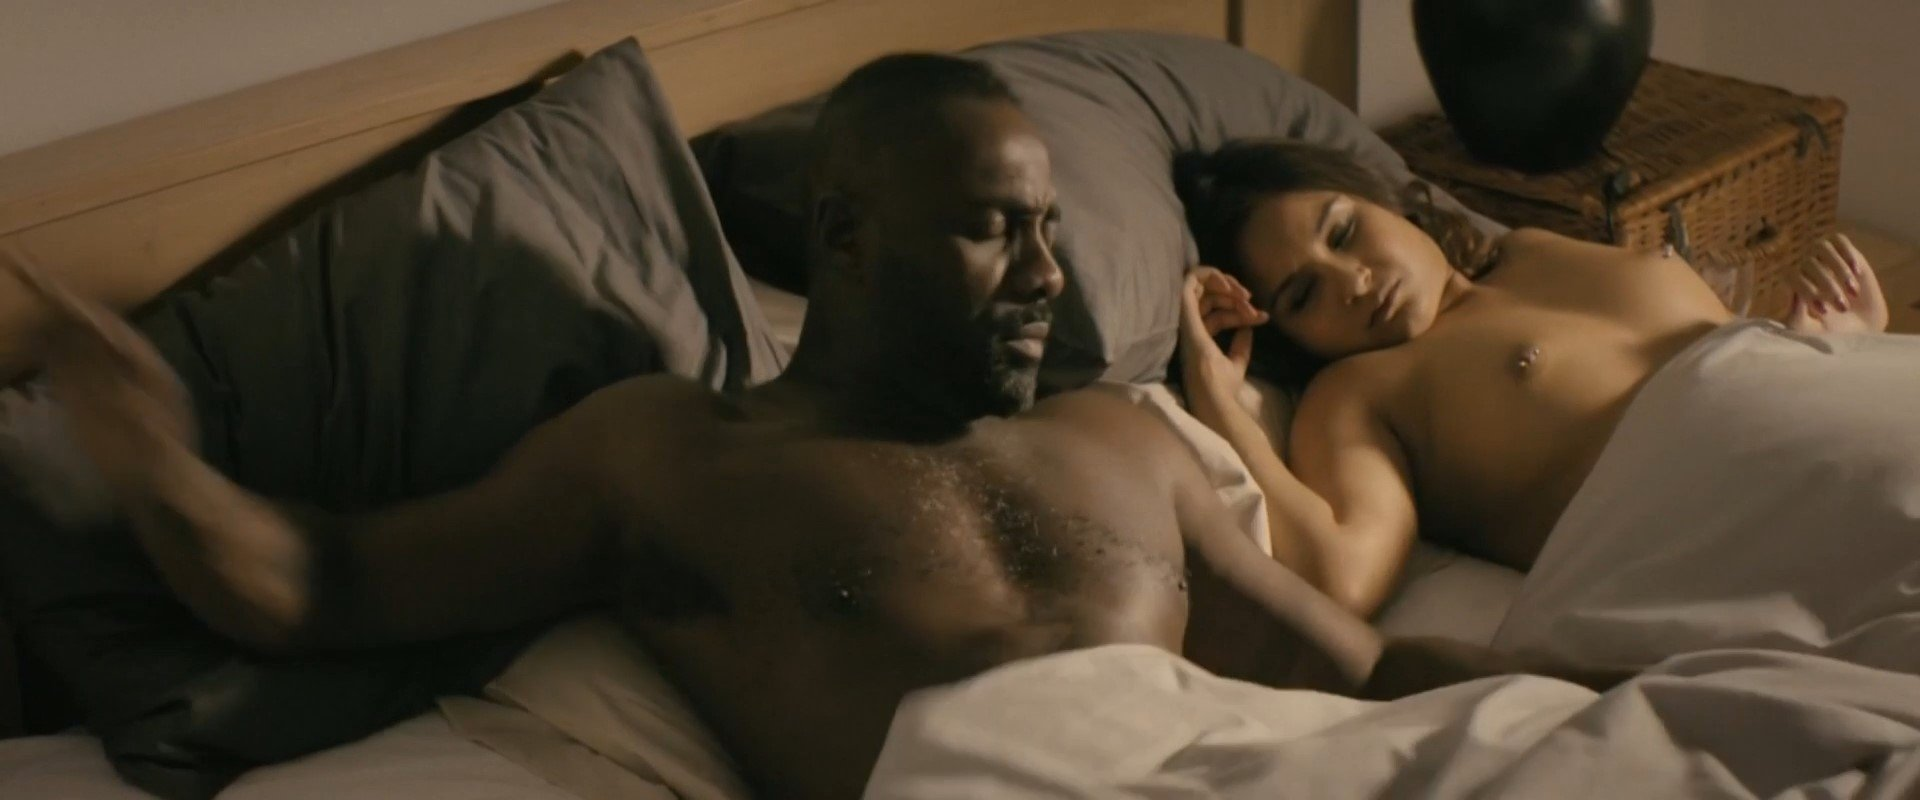 gemma arterton sex nude movie